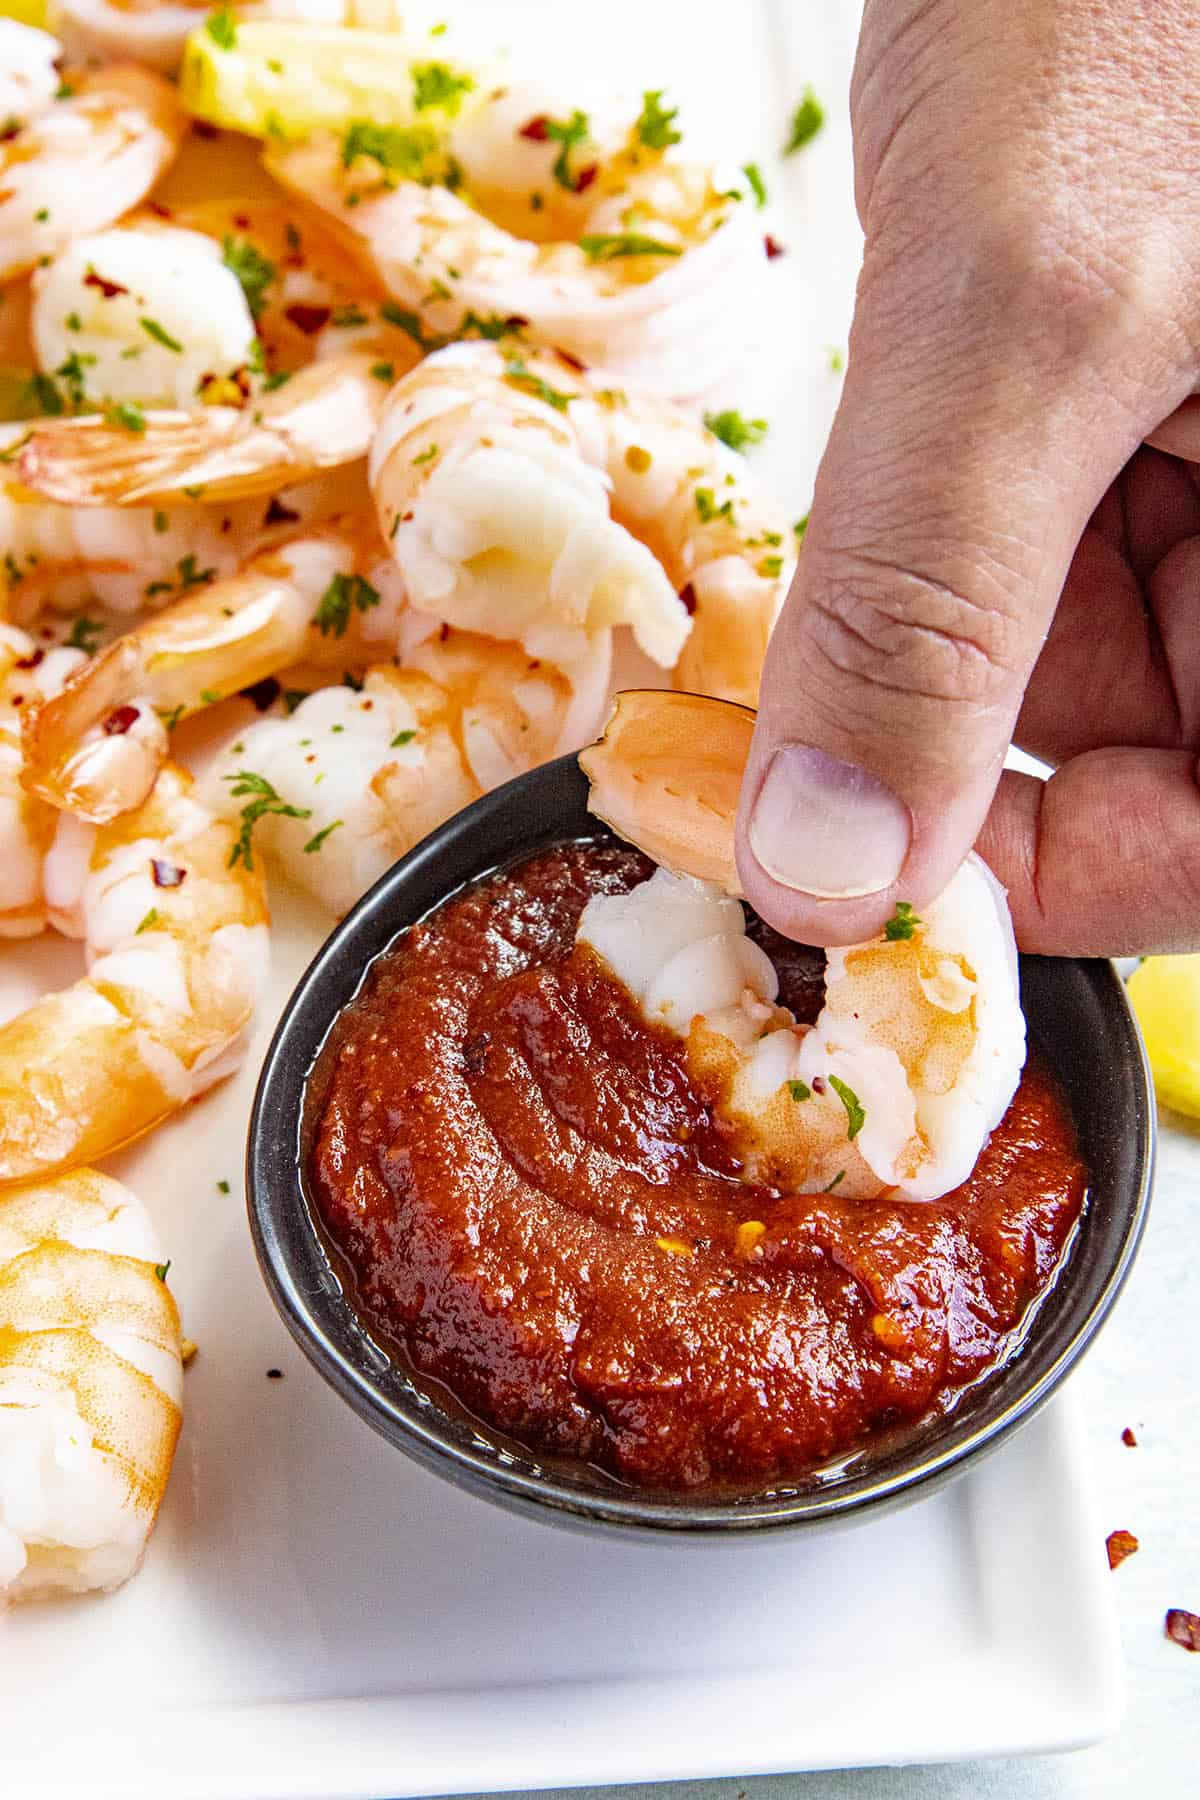 Dipping a piece of shrimp into a bowl of homemade chili sauce